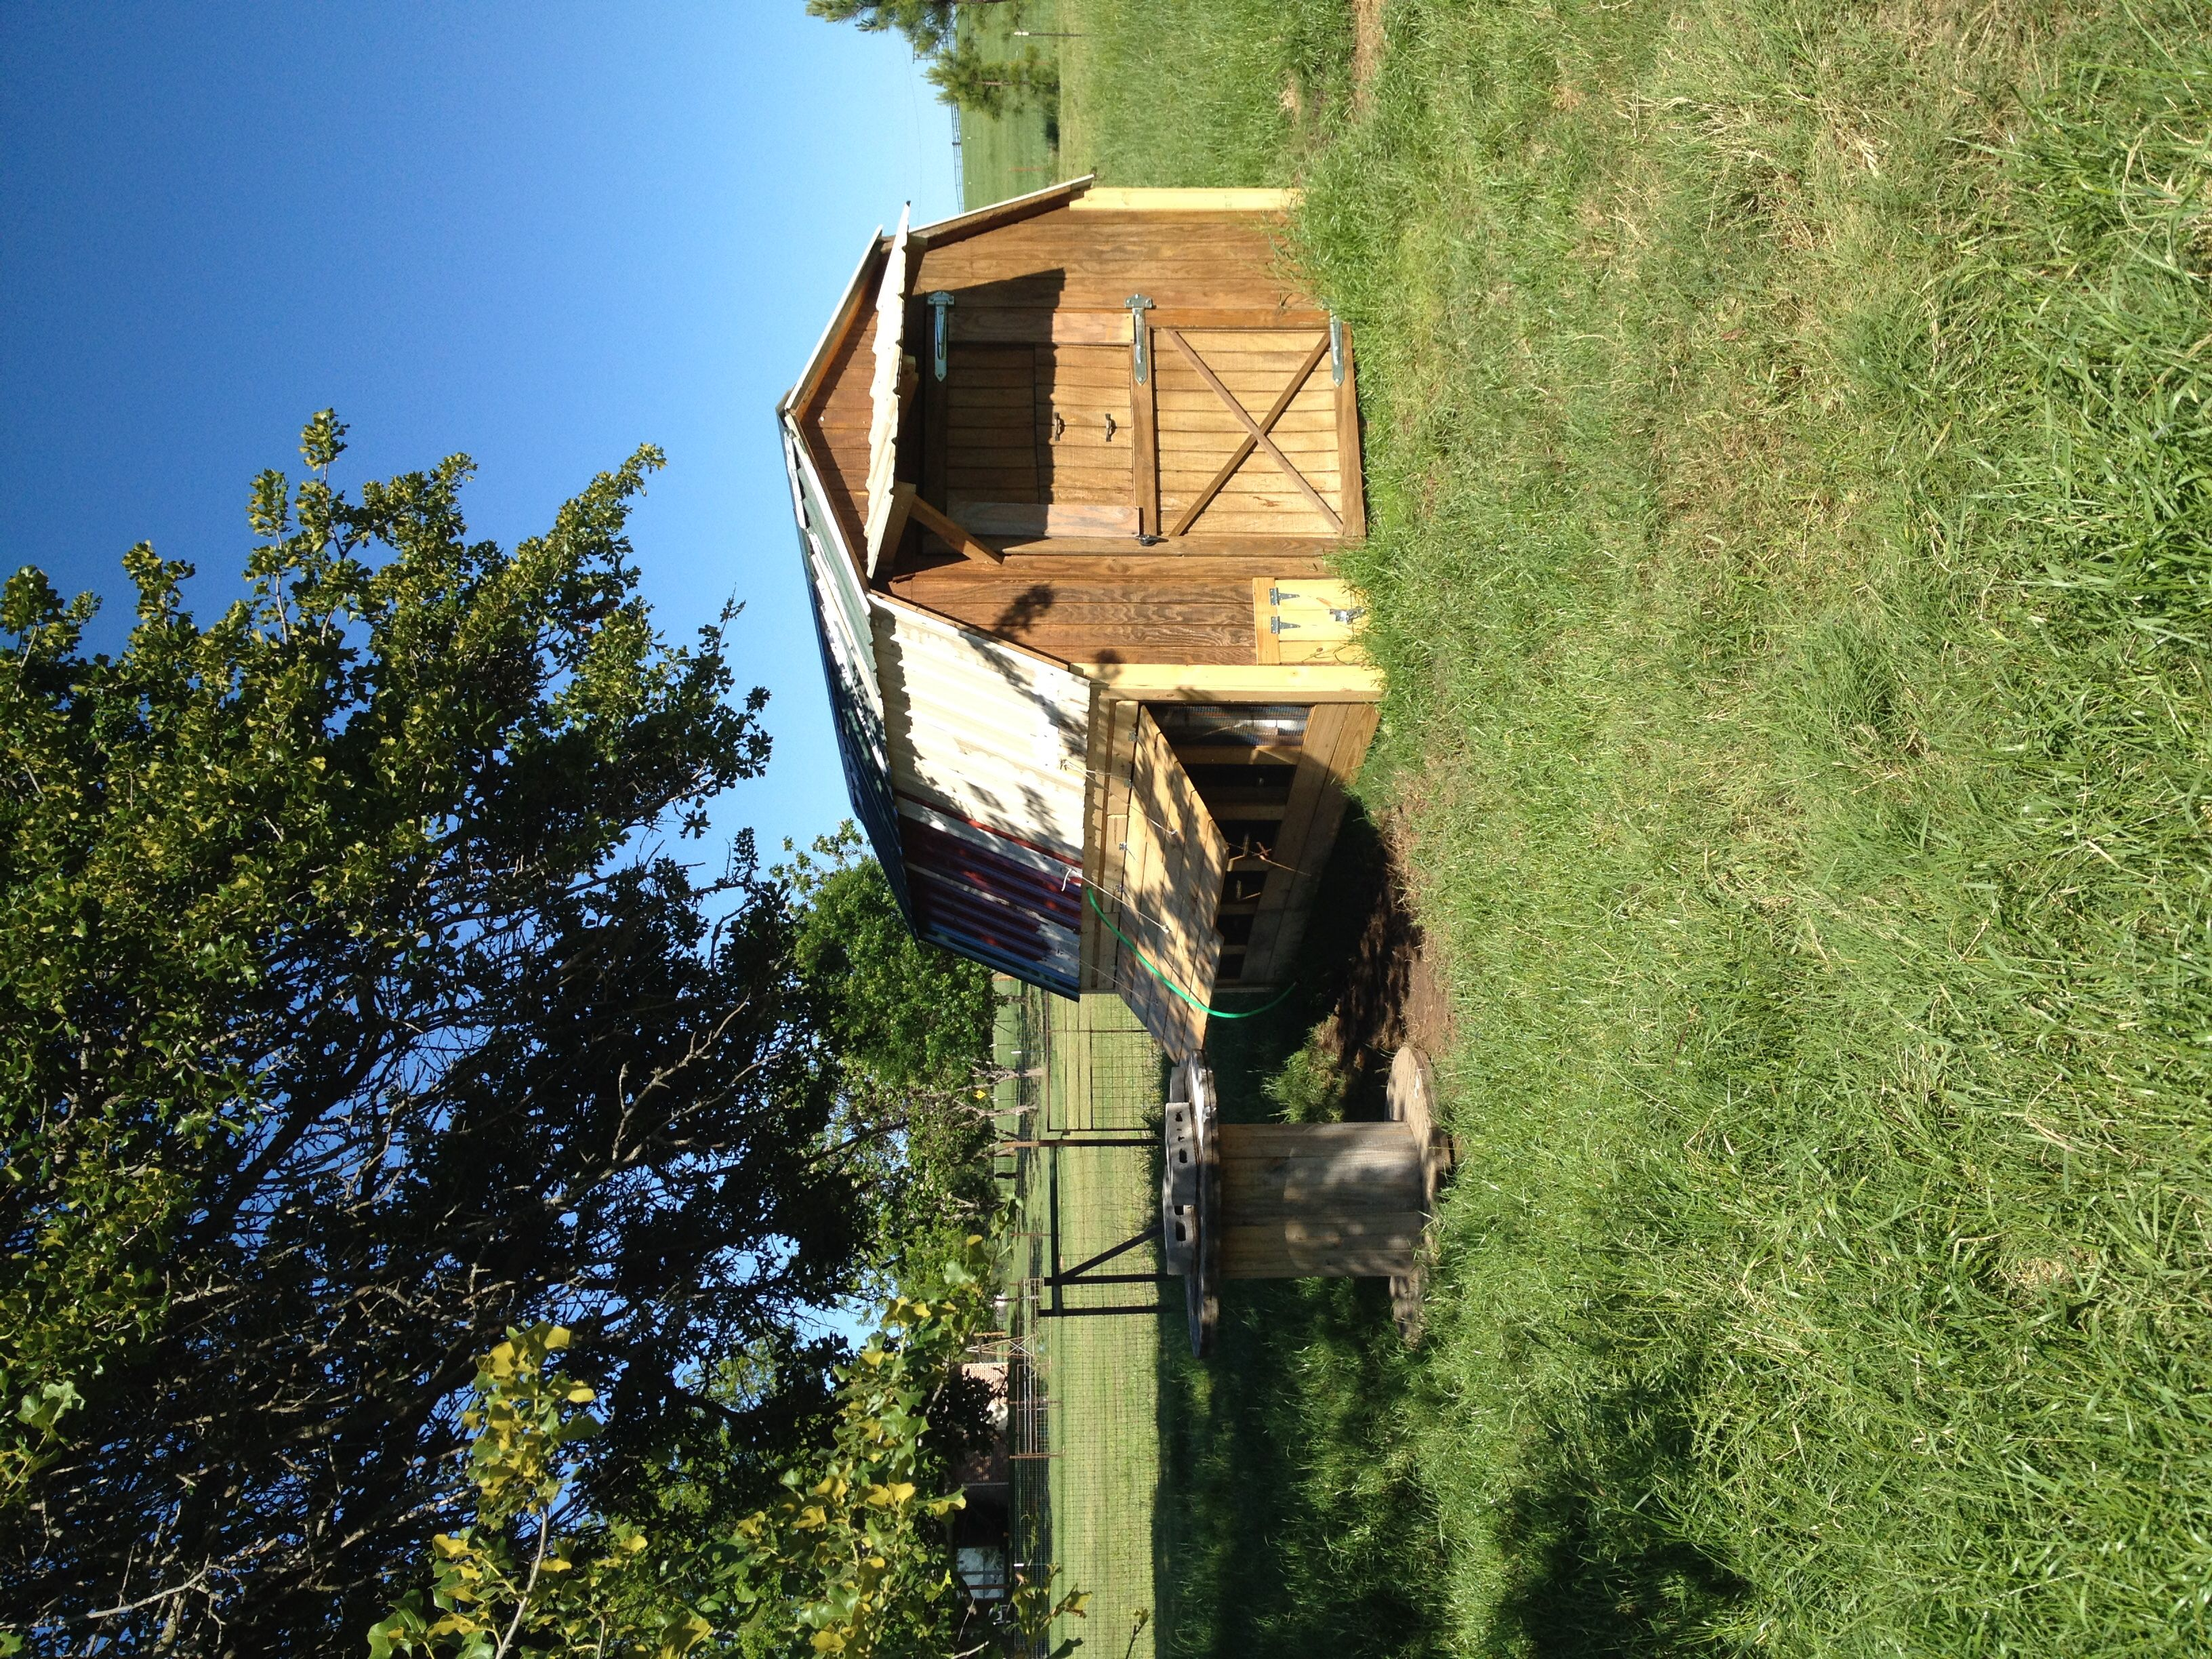 12x8 shed turned into a chicken coop - Treehouse Plans 12x8